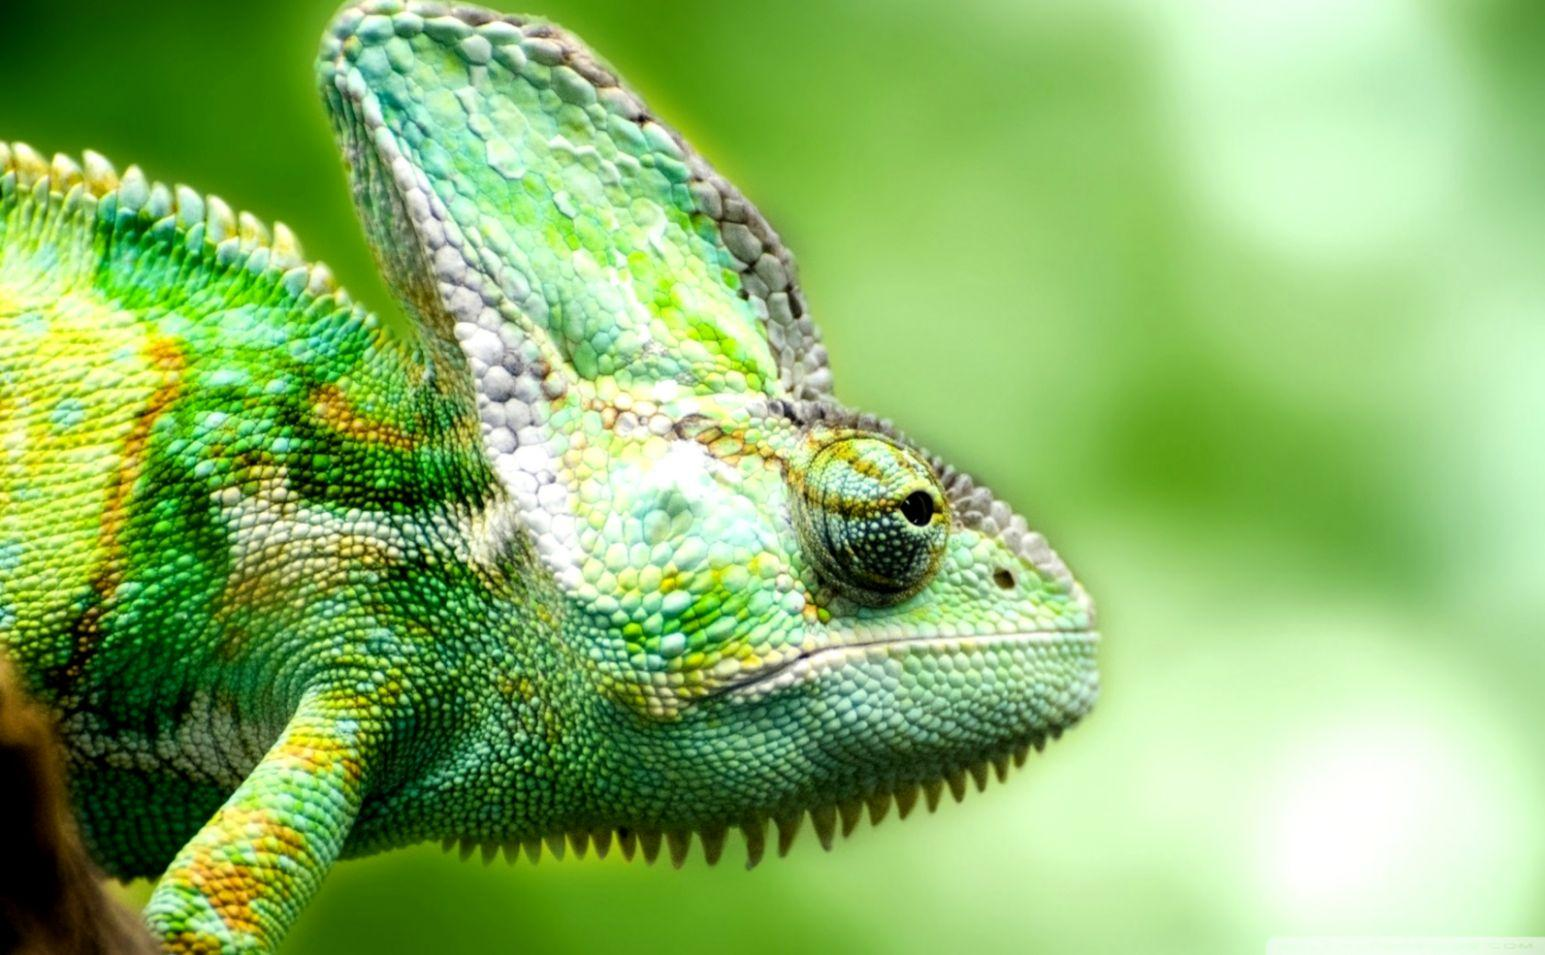 Lizard Chameleon Hd Wallpapers